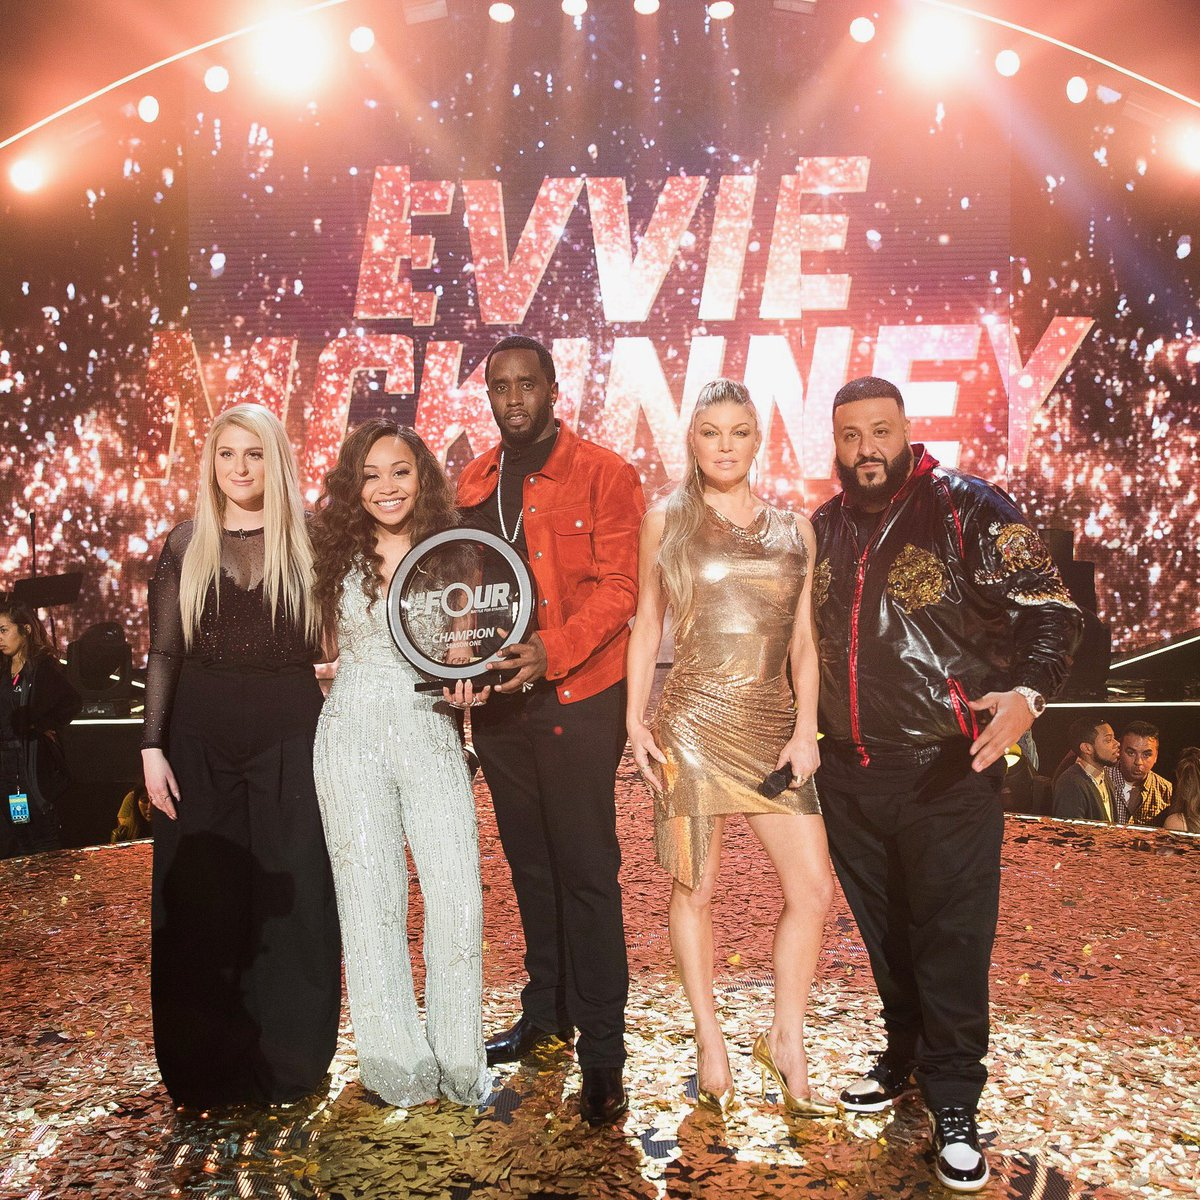 The Champion!!! @evvie_music #TheFour